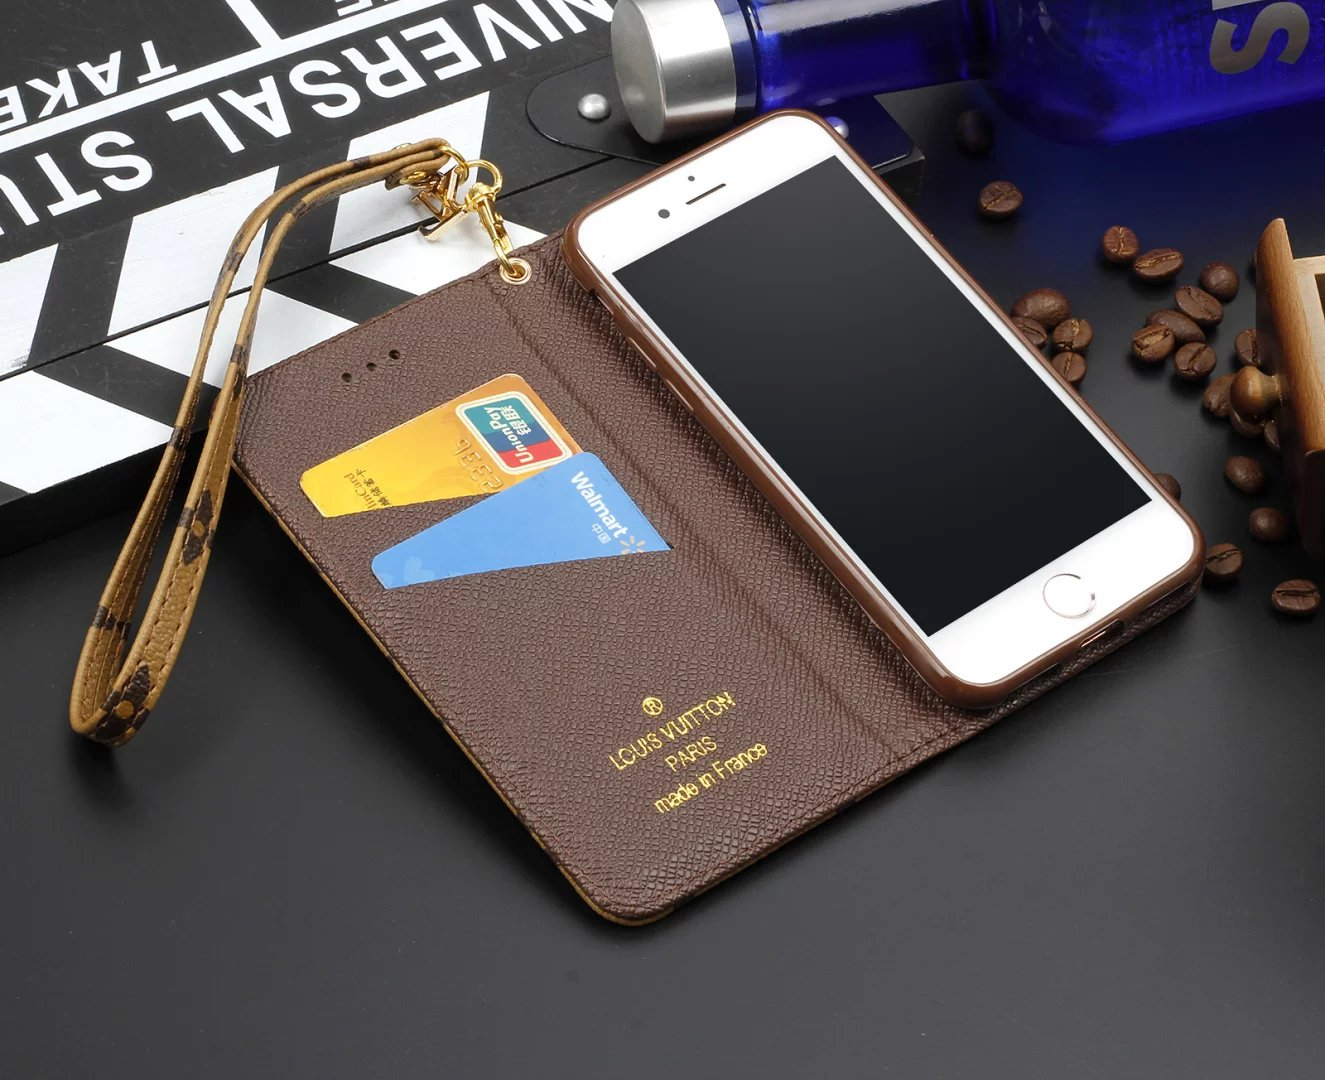 iphone 6 Plus fashion cases cheap iphone 6 Plus phone cases fashion iphone6 plus case how much are mophie cases in case iphone 6 phone cases online best iphone cases make cell phone case chloe iphone case